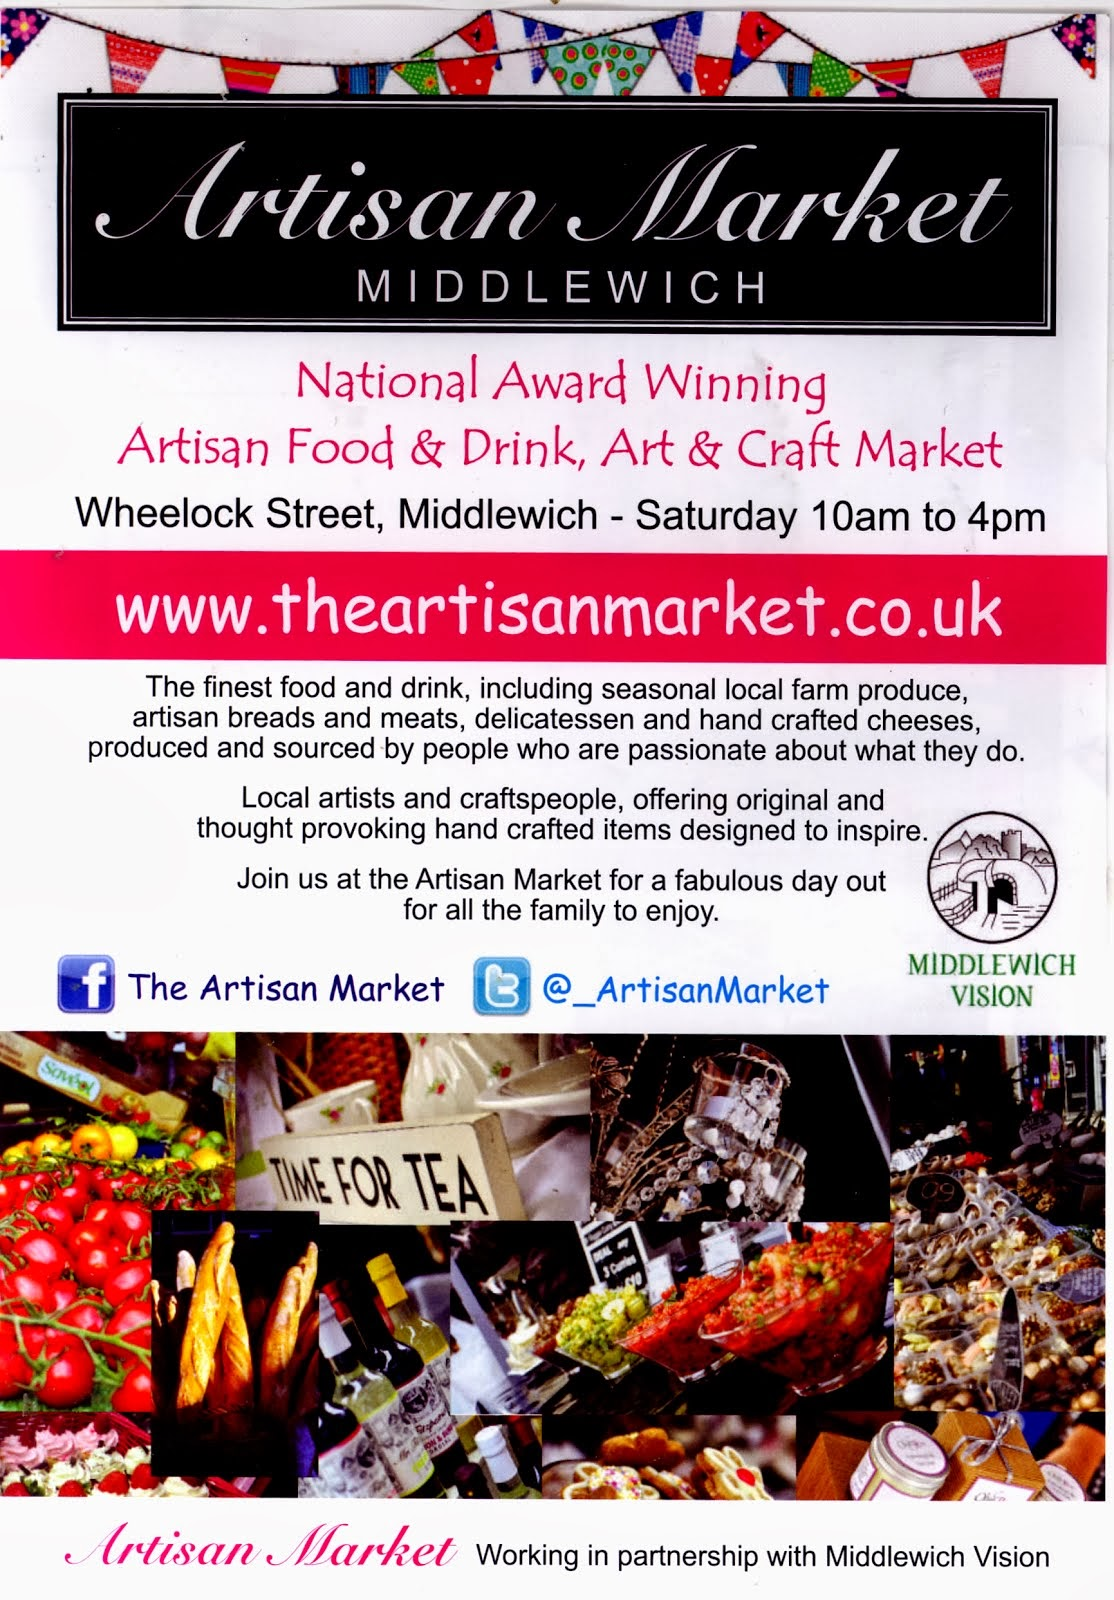 MIDDLEWICH ARTISAN MARKET DATES FOR  2014